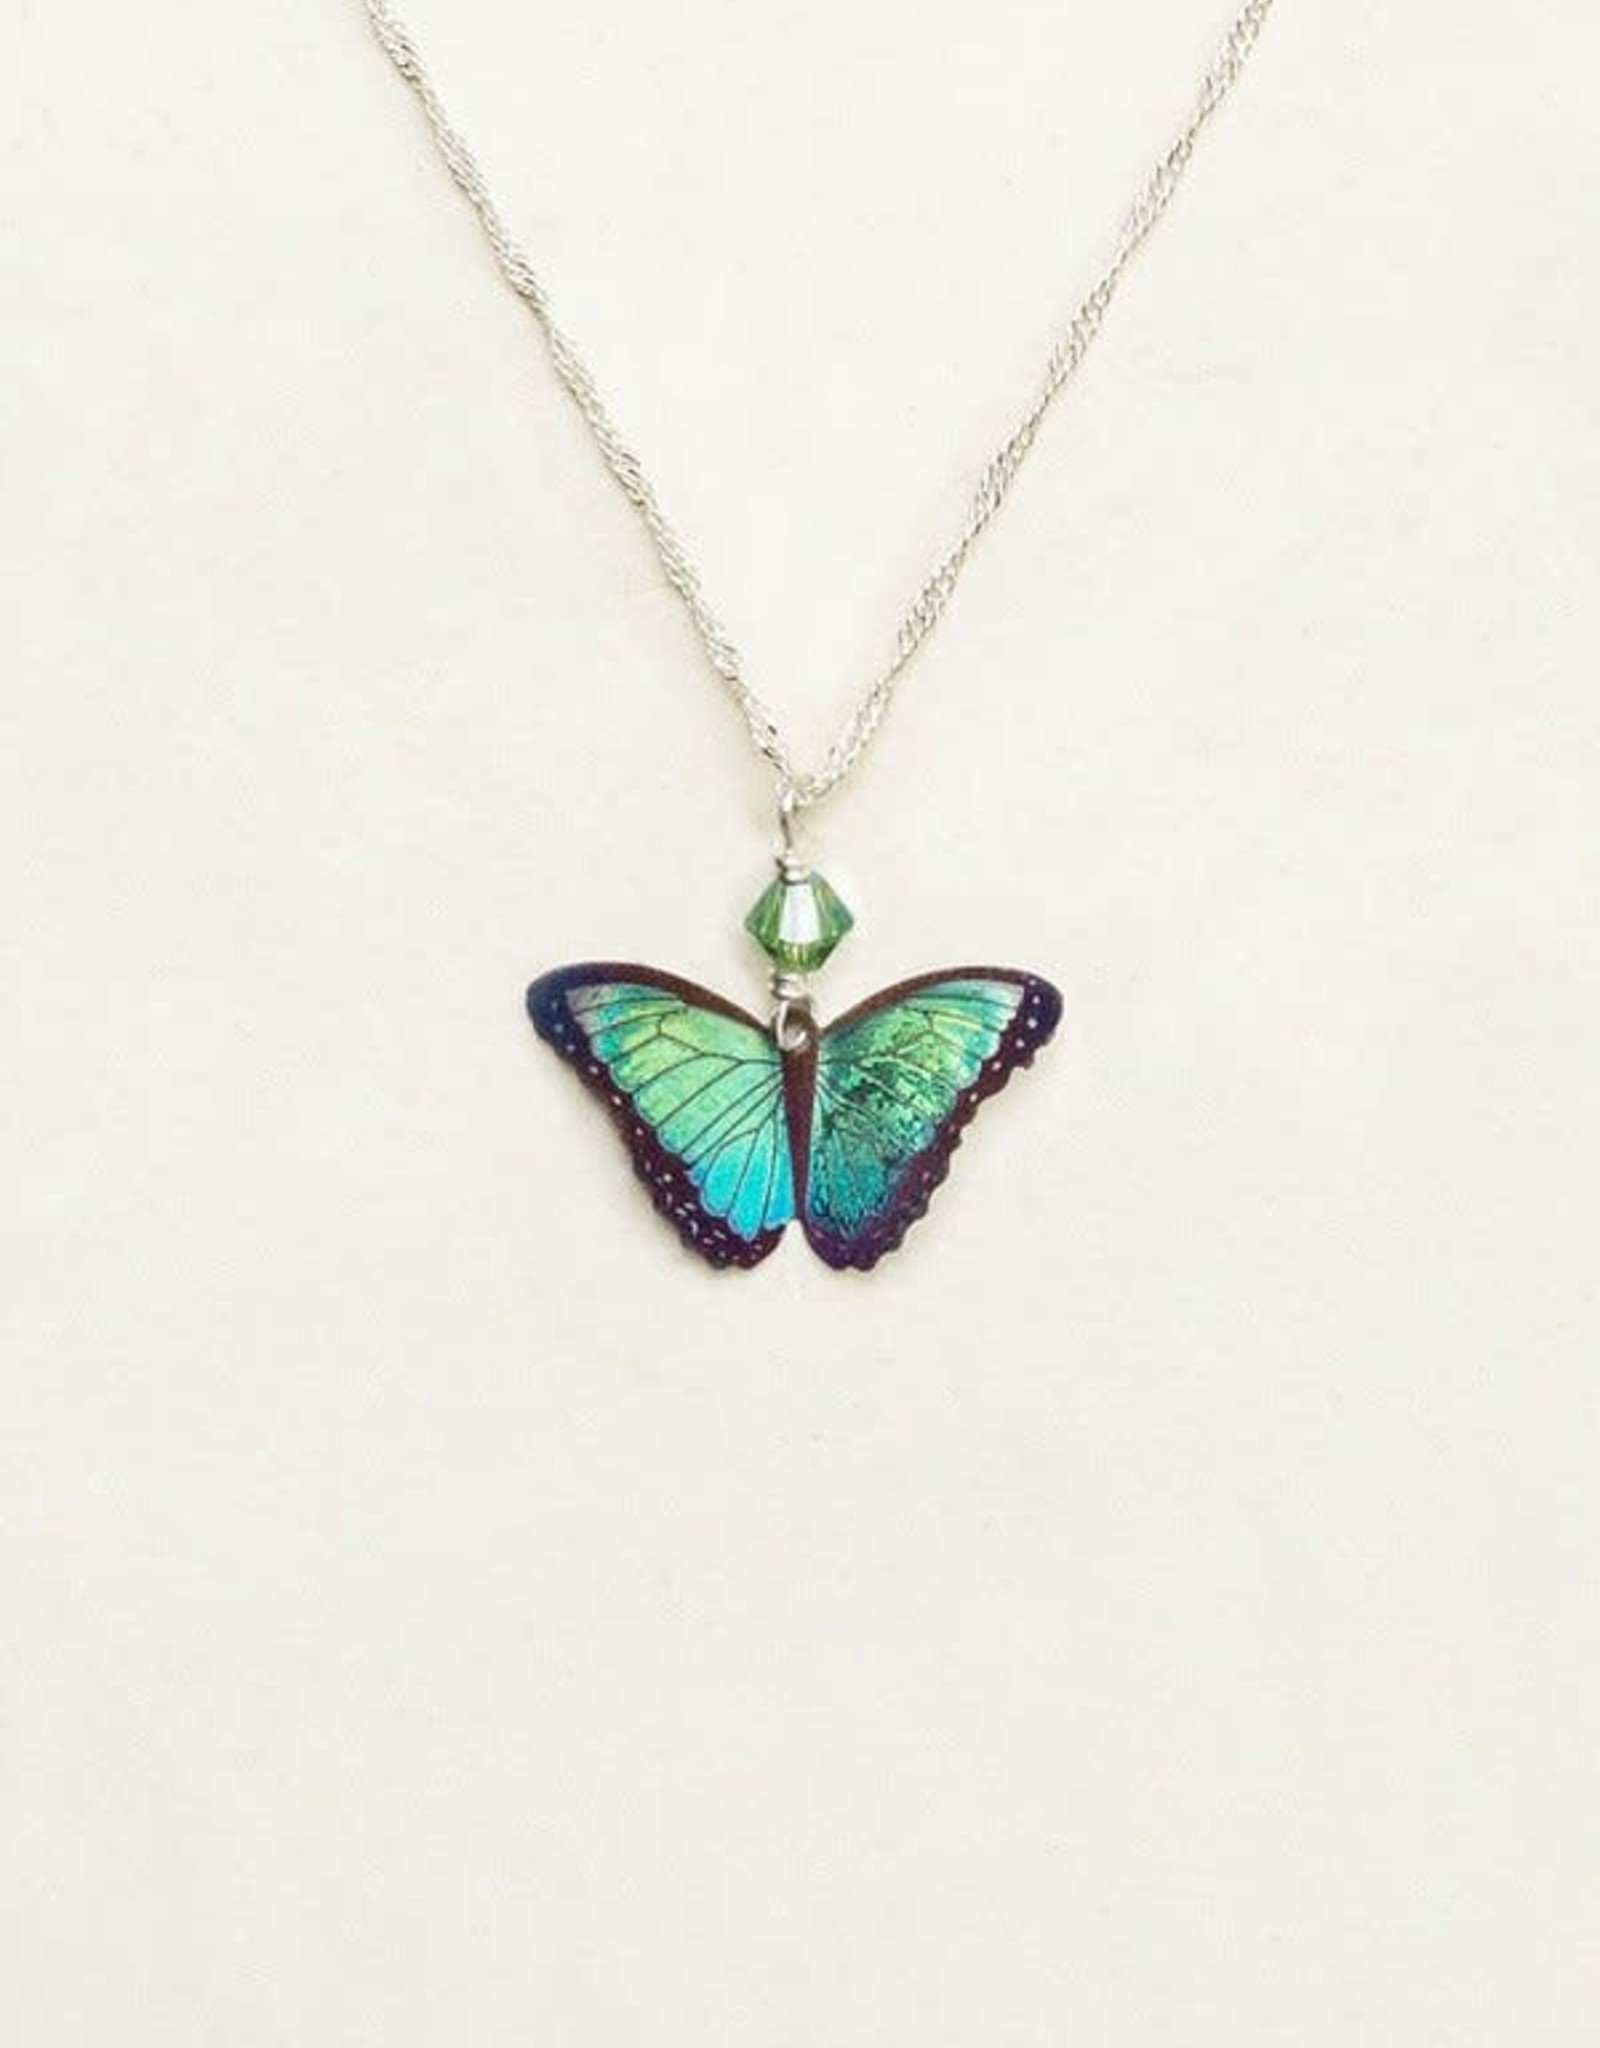 Holly Yashi Green Flash Bella Butterfly Pendant Necklace